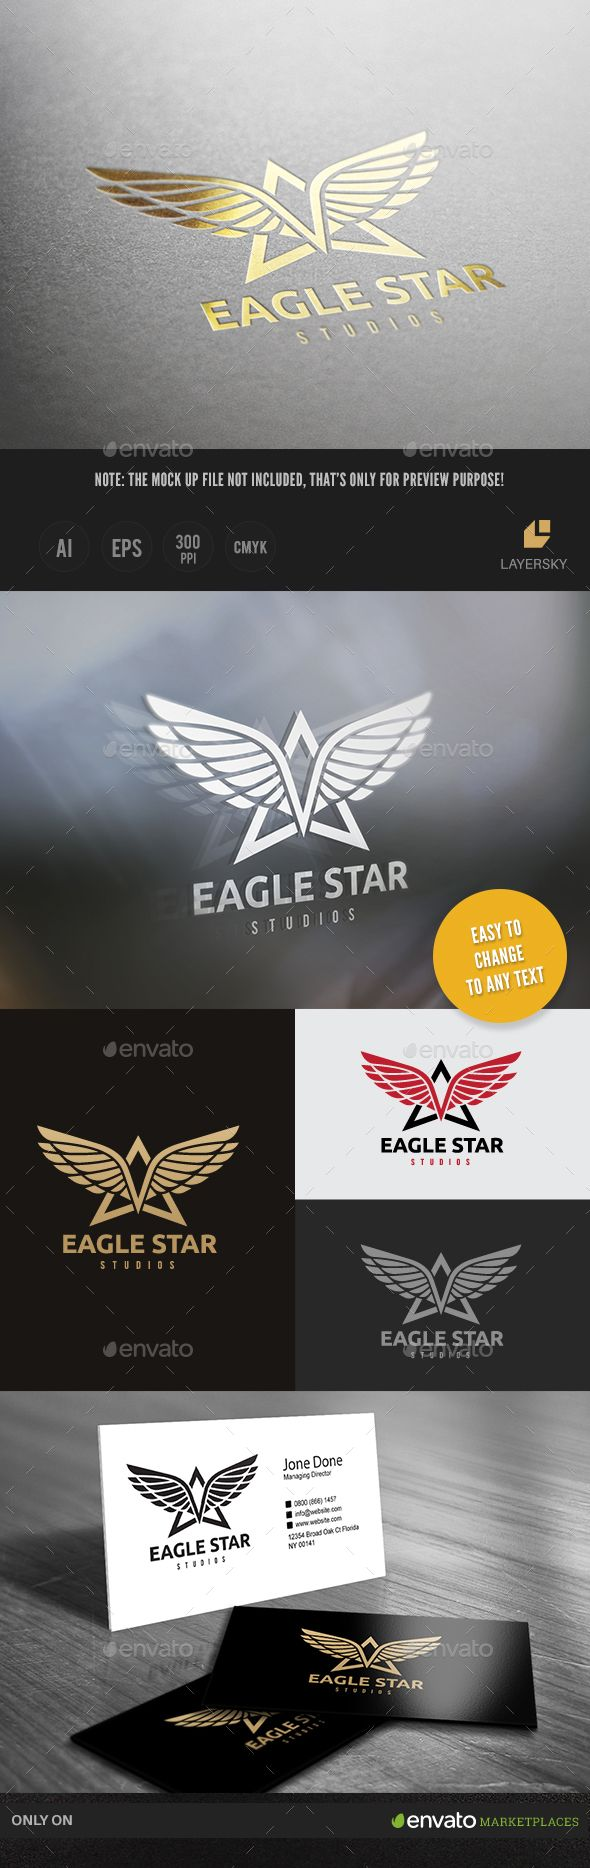 Eagle Star Logo Template Vector EPS, AI. Download here: http://graphicriver.net/item/eagle-star-logo/15022075?ref=ksioks